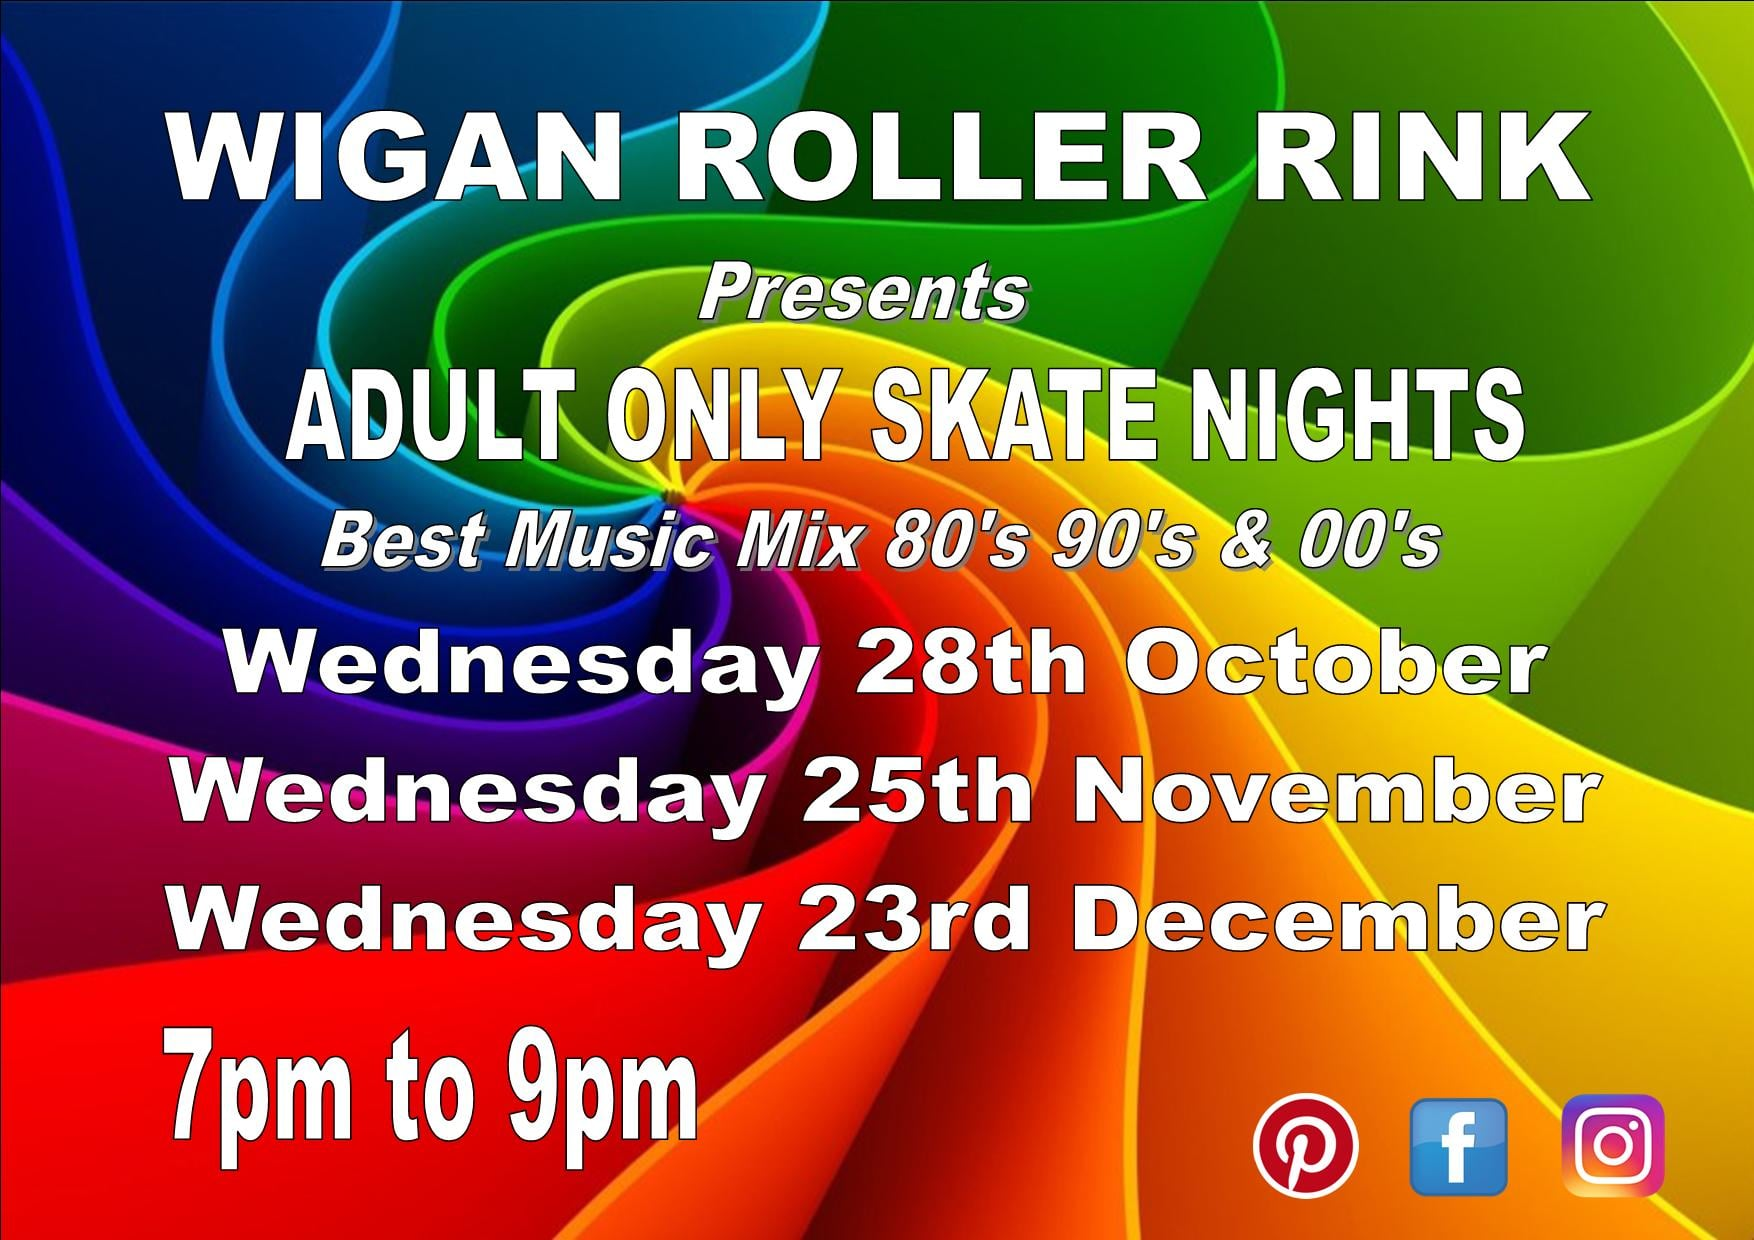 OVER 18'S ONLY WEDS 28TH OCTOBER  7PM - 9PM